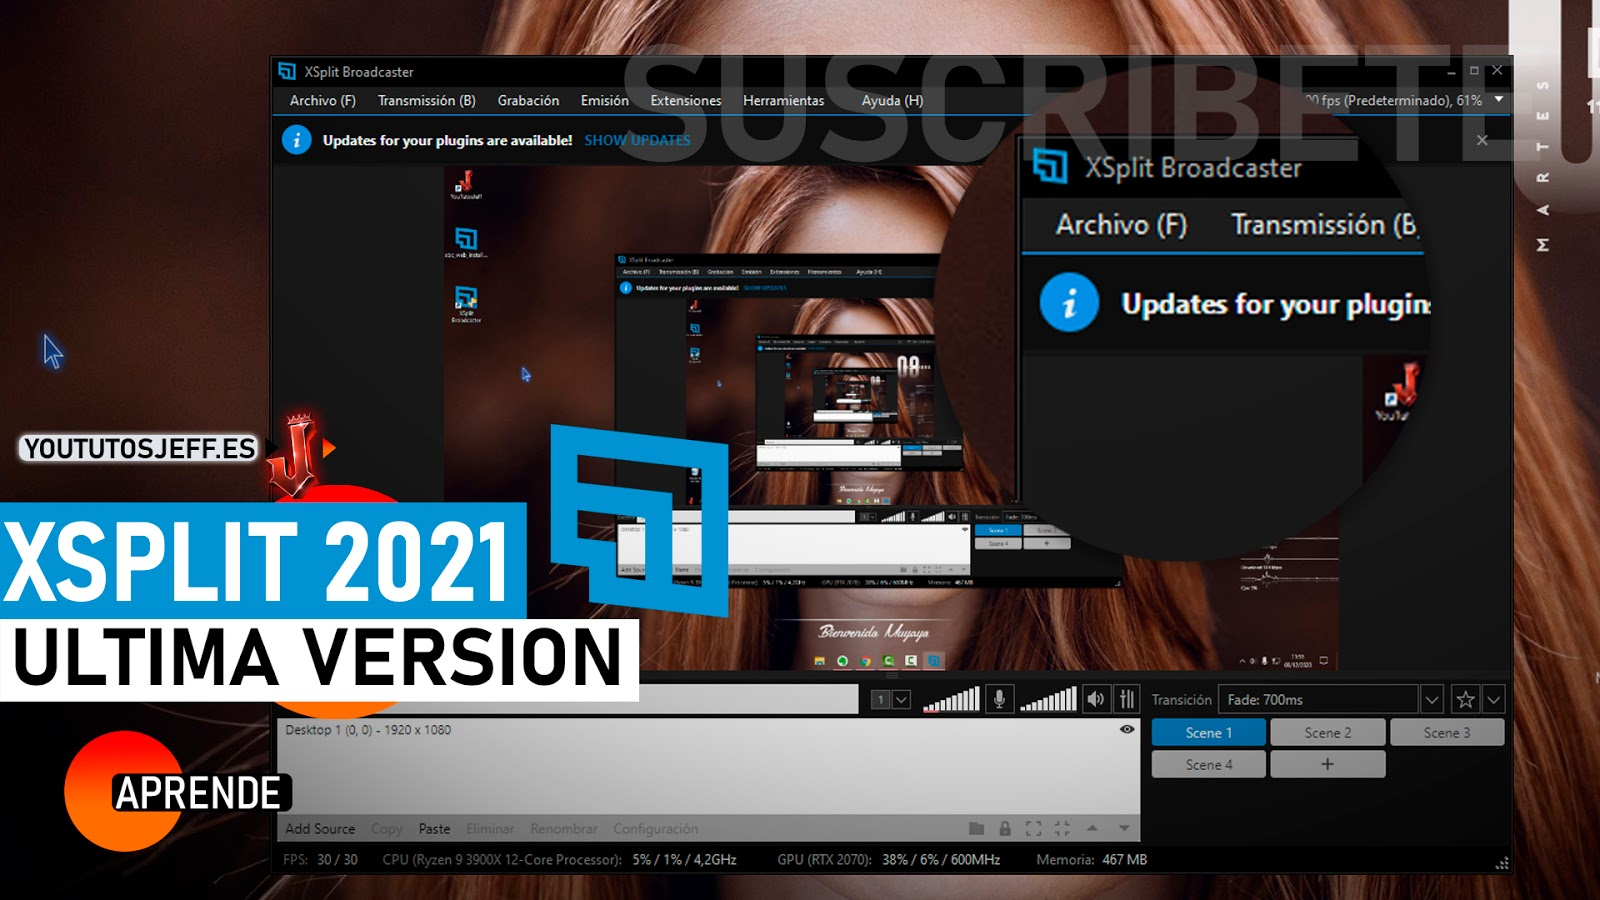 Como Descargar Xsplit Broadcaster Ultima Version 2021 Español